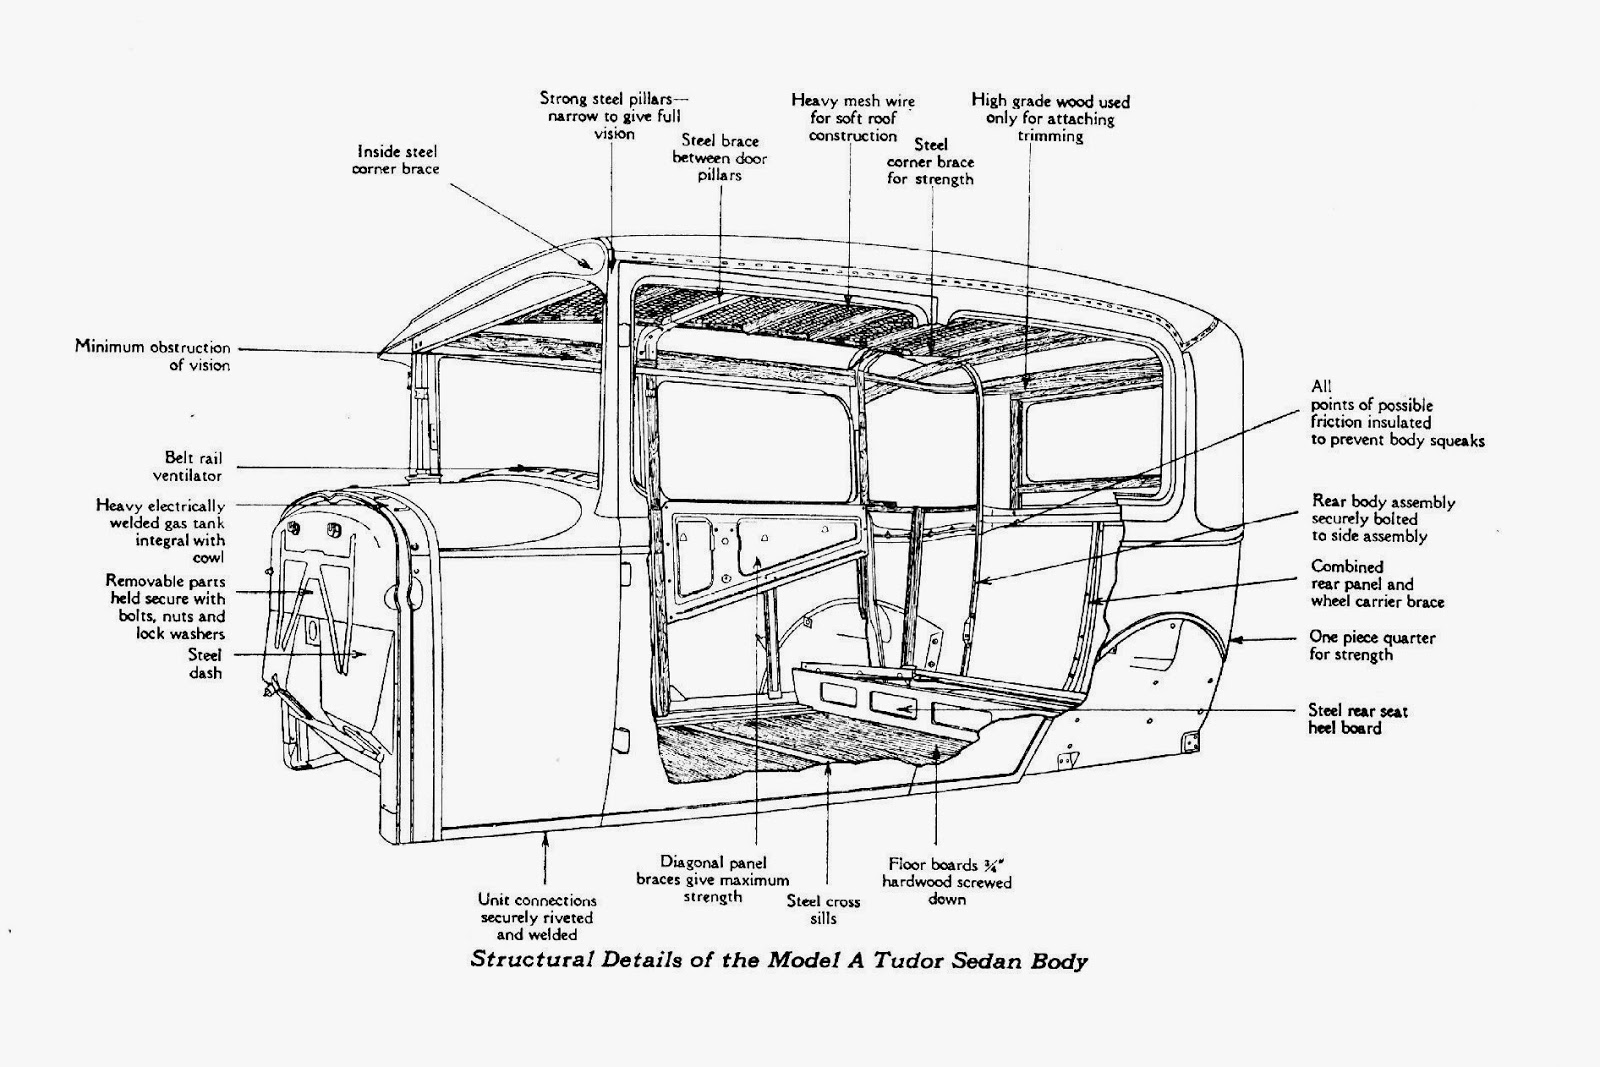 Jeep Dana 44 Rear Axle Diagram On Cj7 furthermore Blend Door Removal 1984 Mercury Topaz together with Cool Model Ford Drawings as well Car Diagram Exterior in addition P 0900c15280269079. on jeep gas tank lock